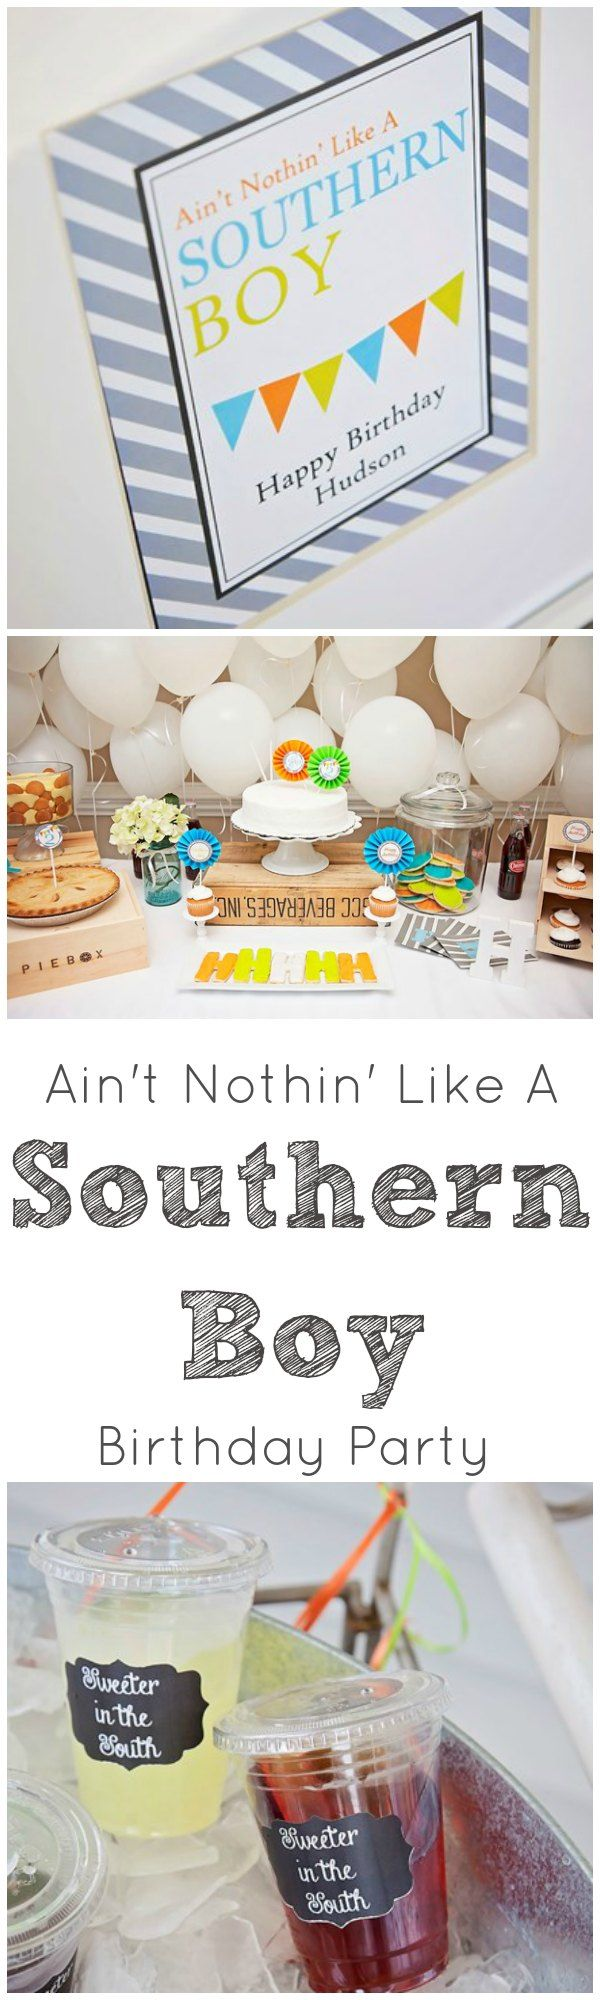 Ain't nothin' in the world like a southern boy. Cutest party theme for a little southern gentleman! <3